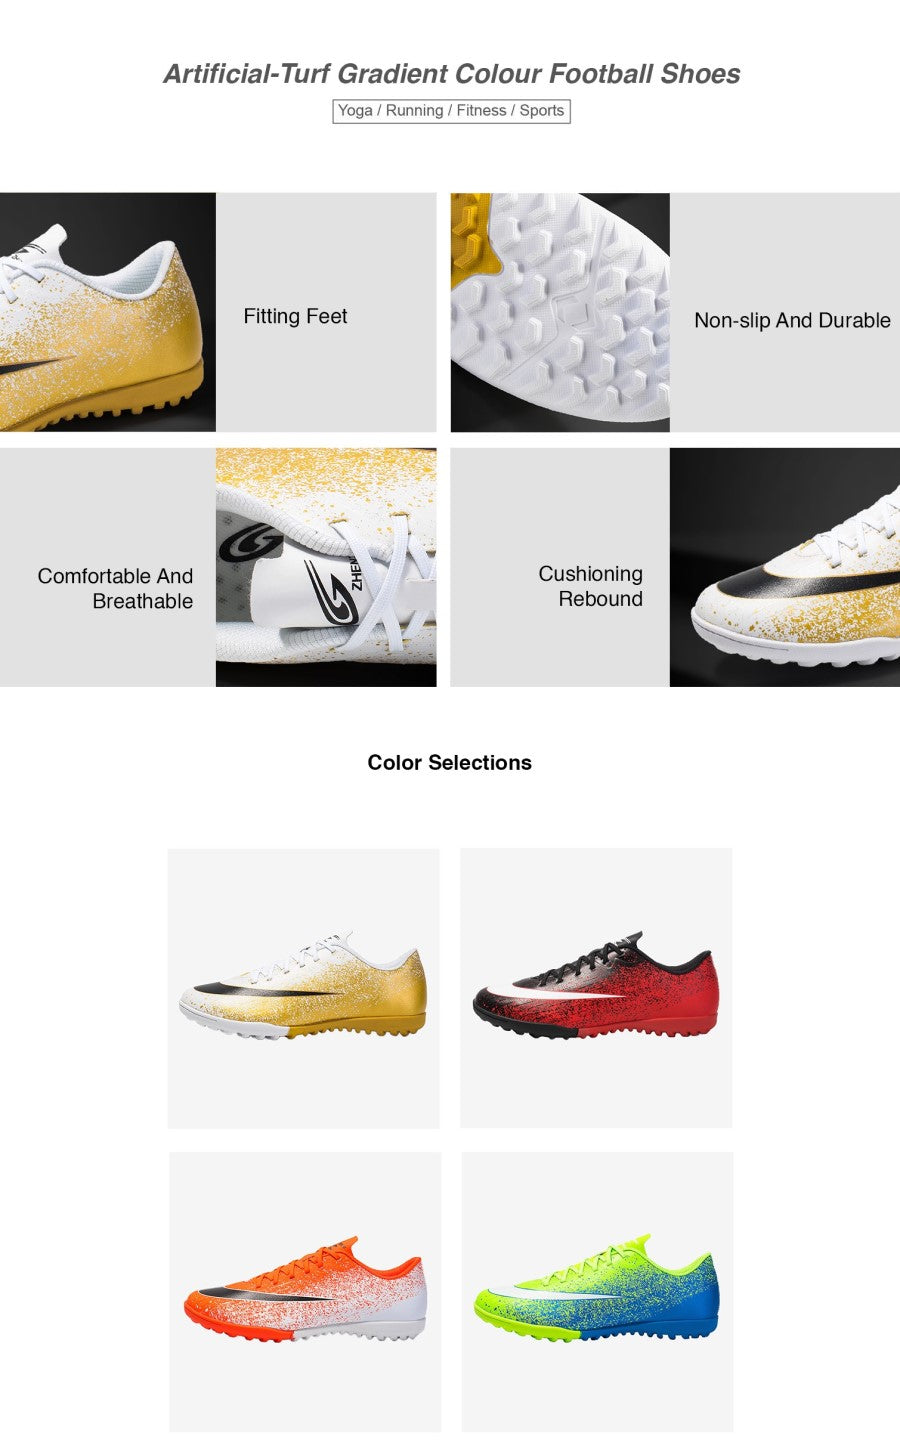 Artificial-Turf Gradient Colour Football Shoes